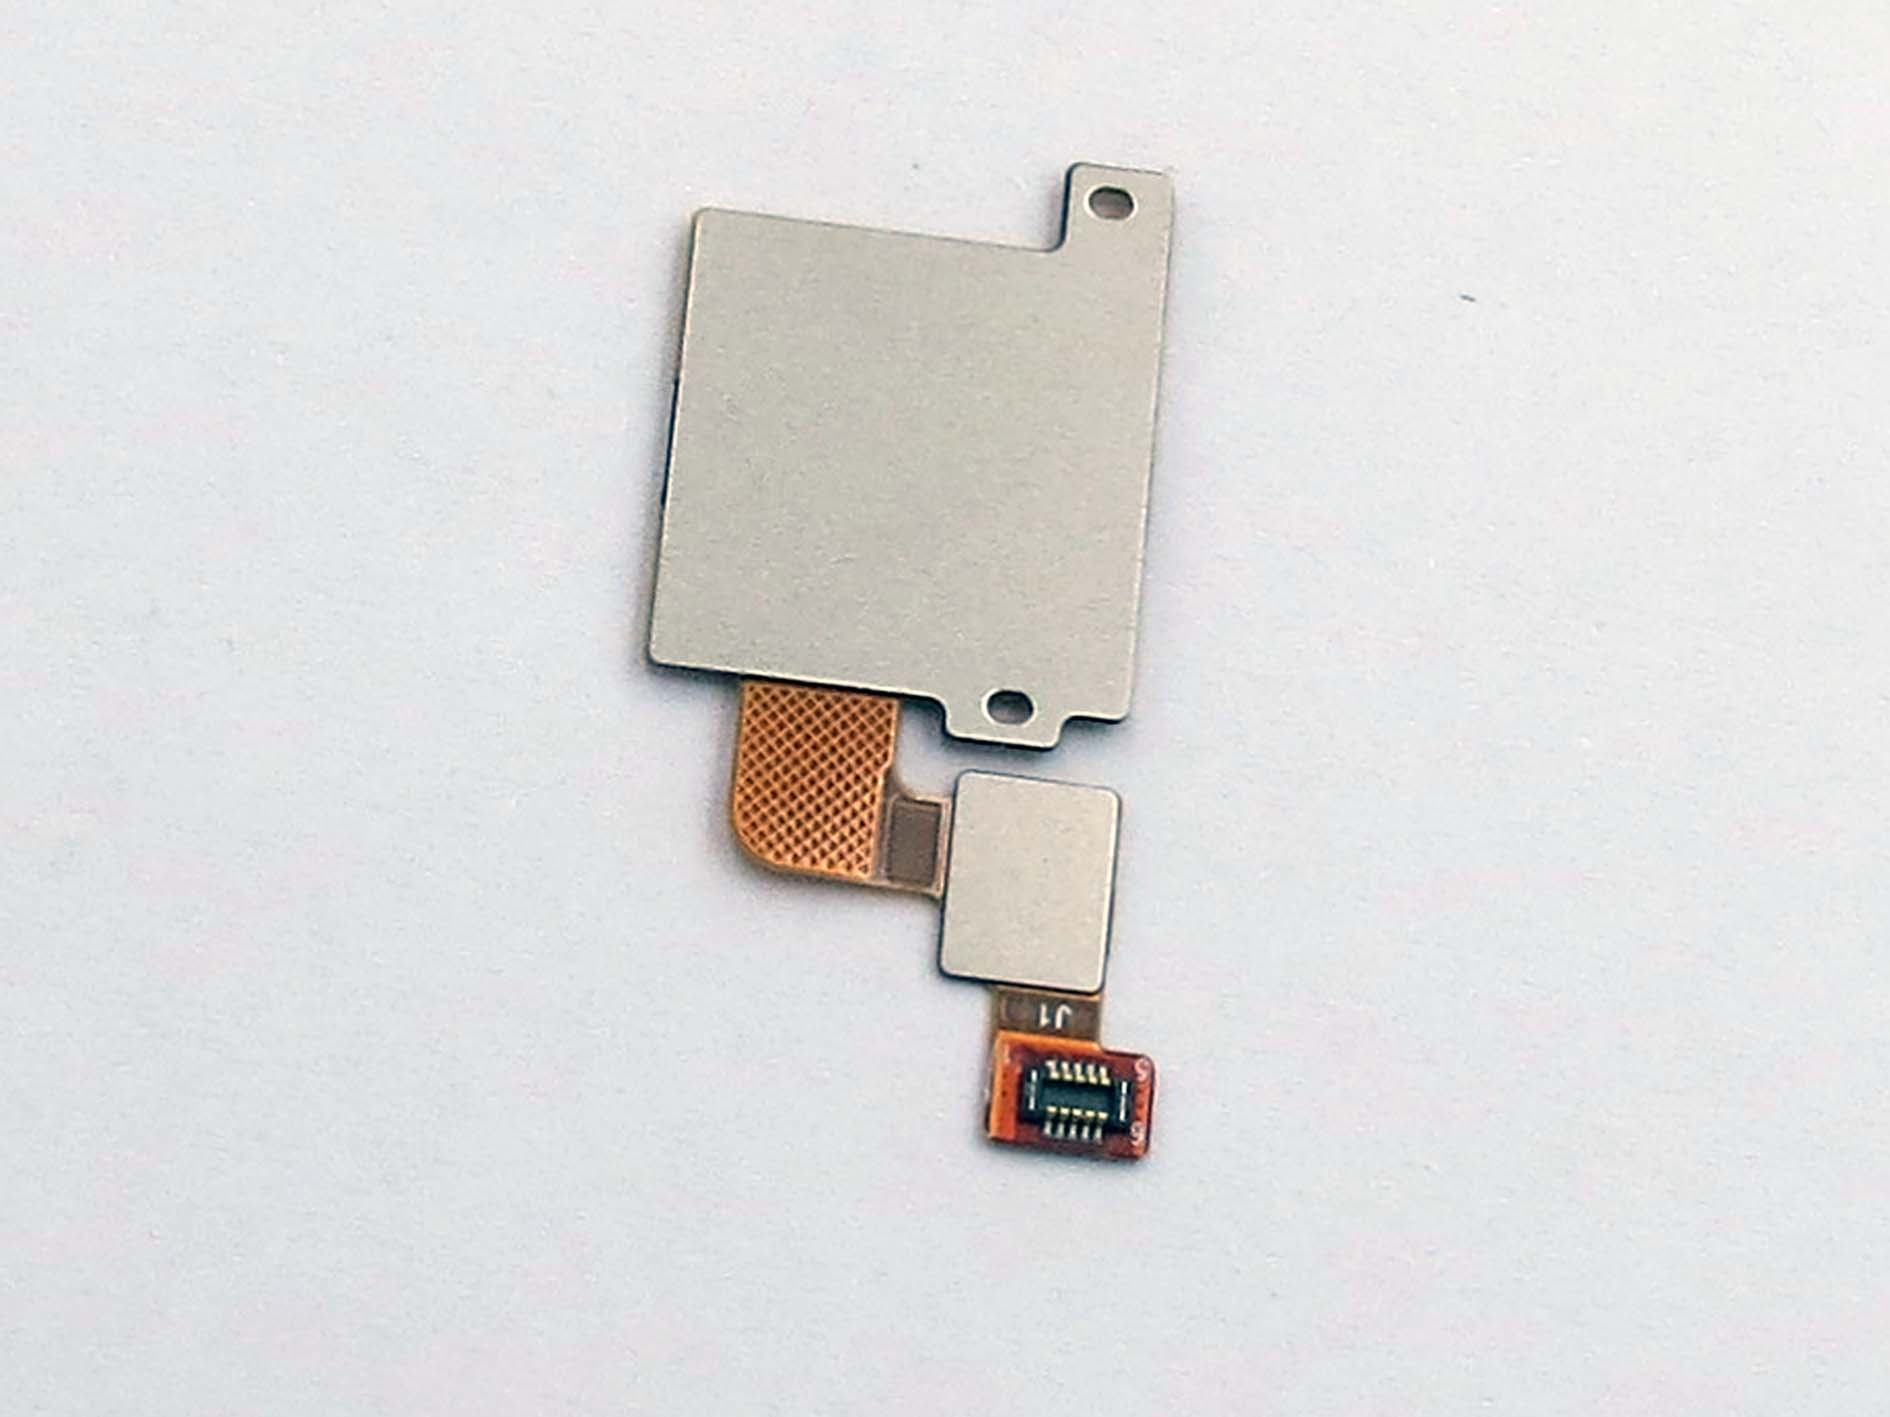 Original Fingerprint sensor flex cable for xiaomi 5x – Black & Pink & Gold